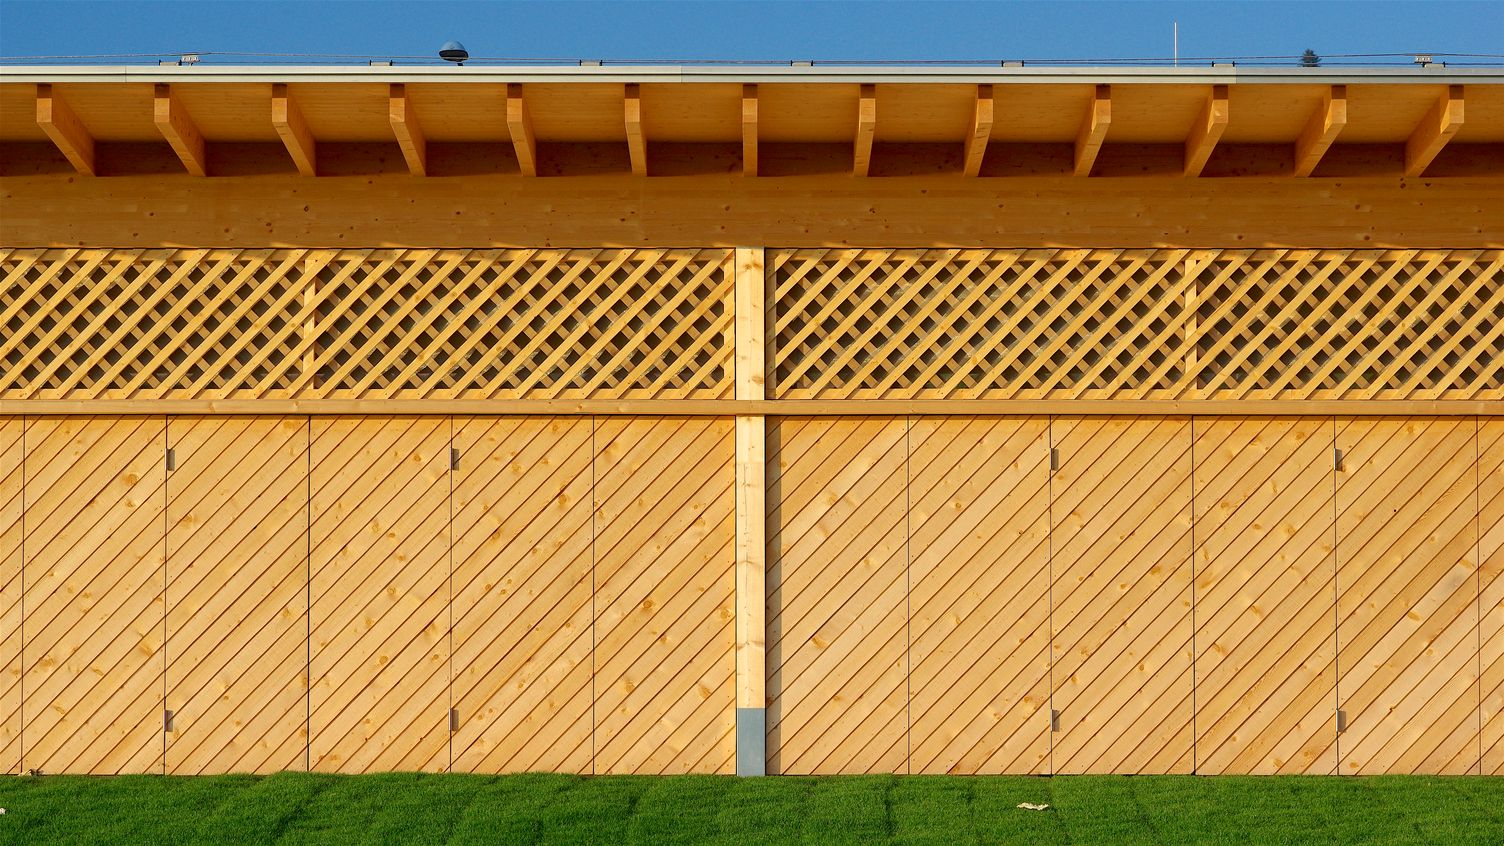 OPEN-AIR BATH LOCHAU - SPRING 2020 (Architekten Innauer Matt) Willem Bruijn © onehundredyears.eu